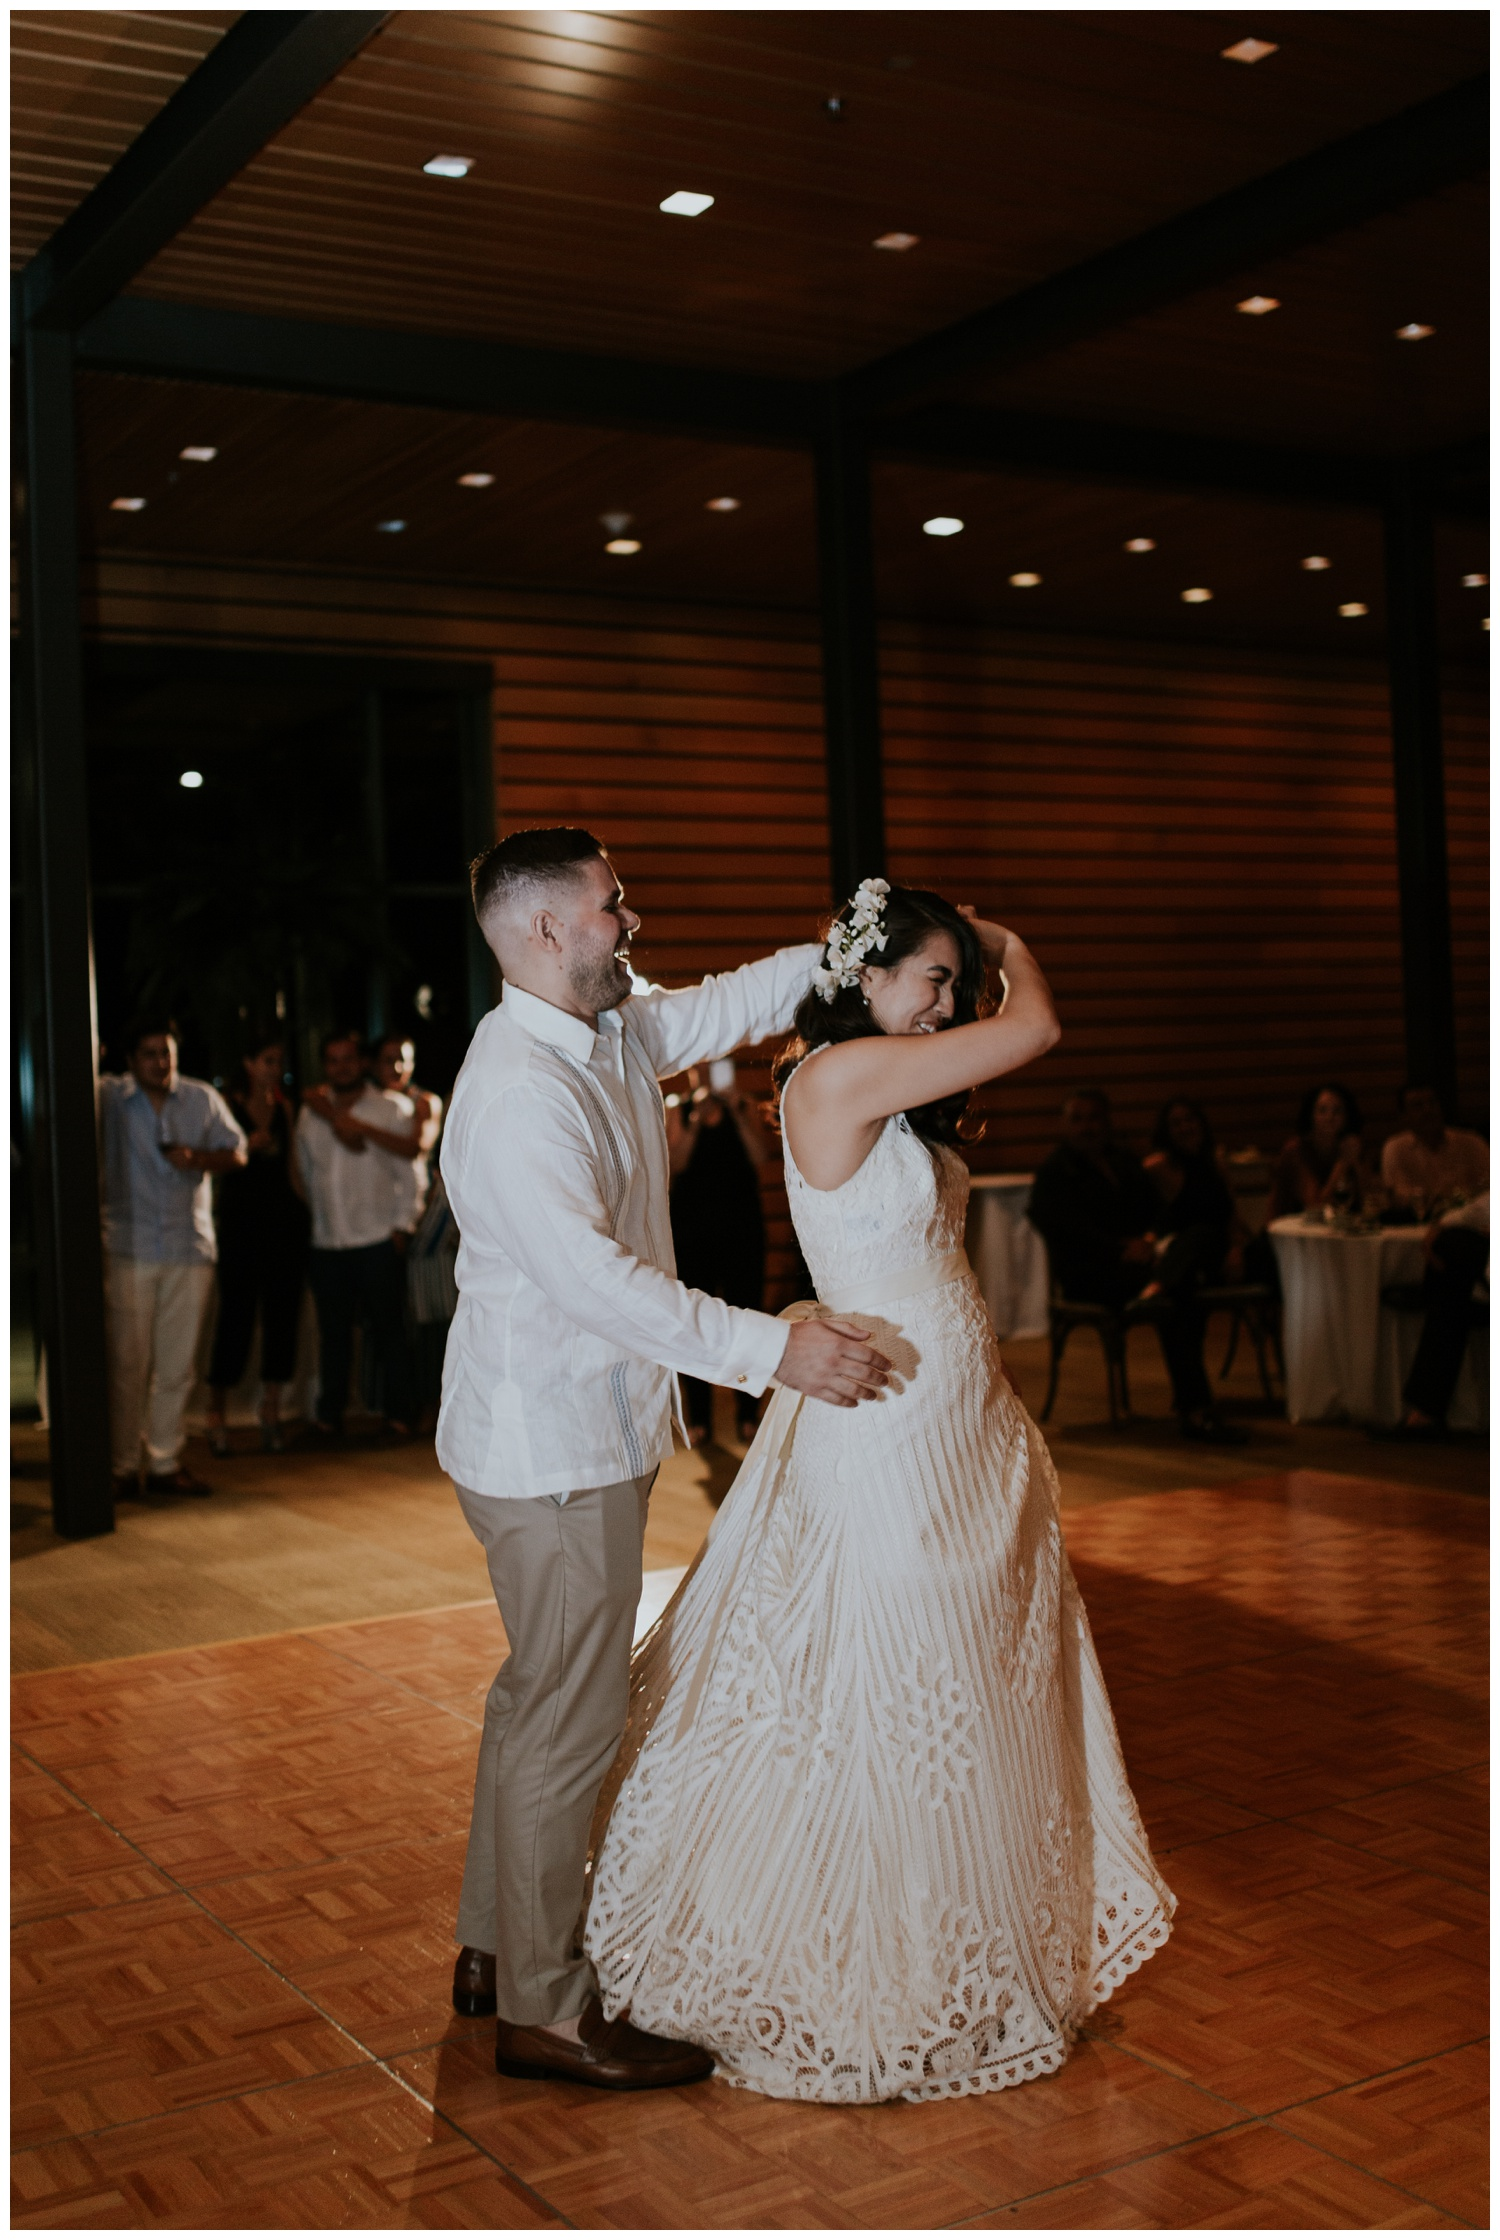 Ana + Sean || Jack Guenther Pavilion at the Briscoe Wedding San Antonio, Texas (Joshua and Parisa – Contista Productions)_0096.jpg